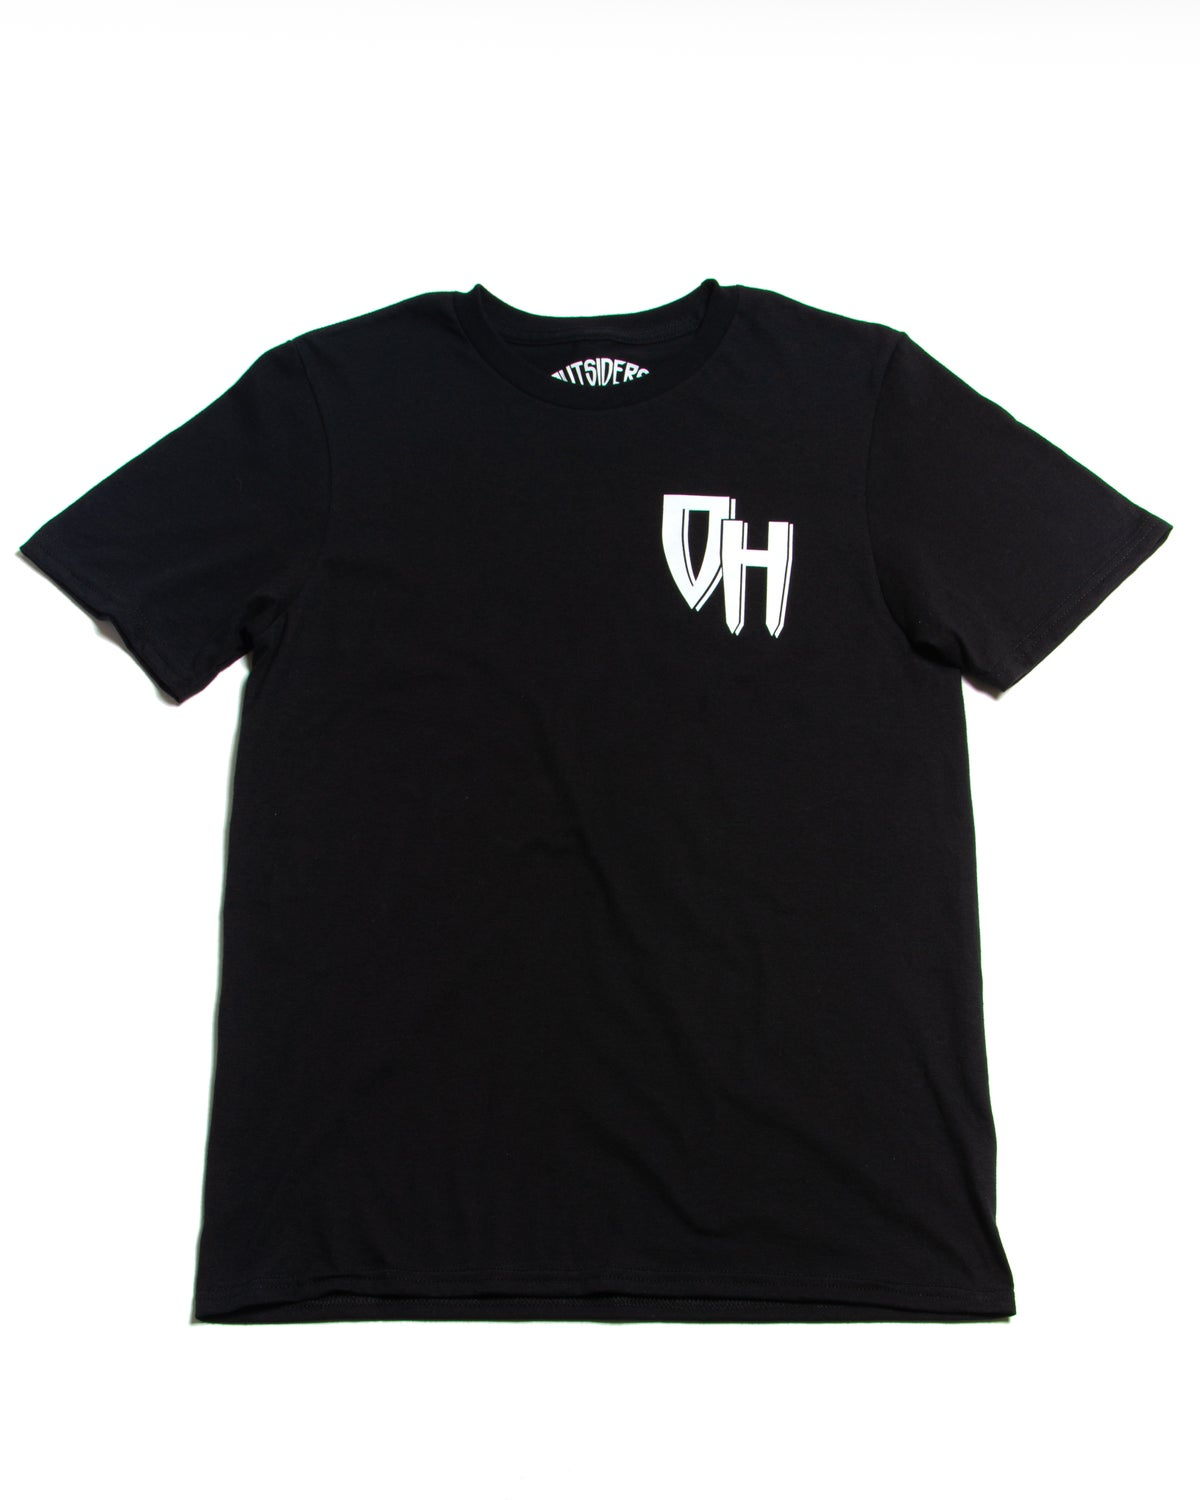 Image of OH Tee '20 (Black/White)